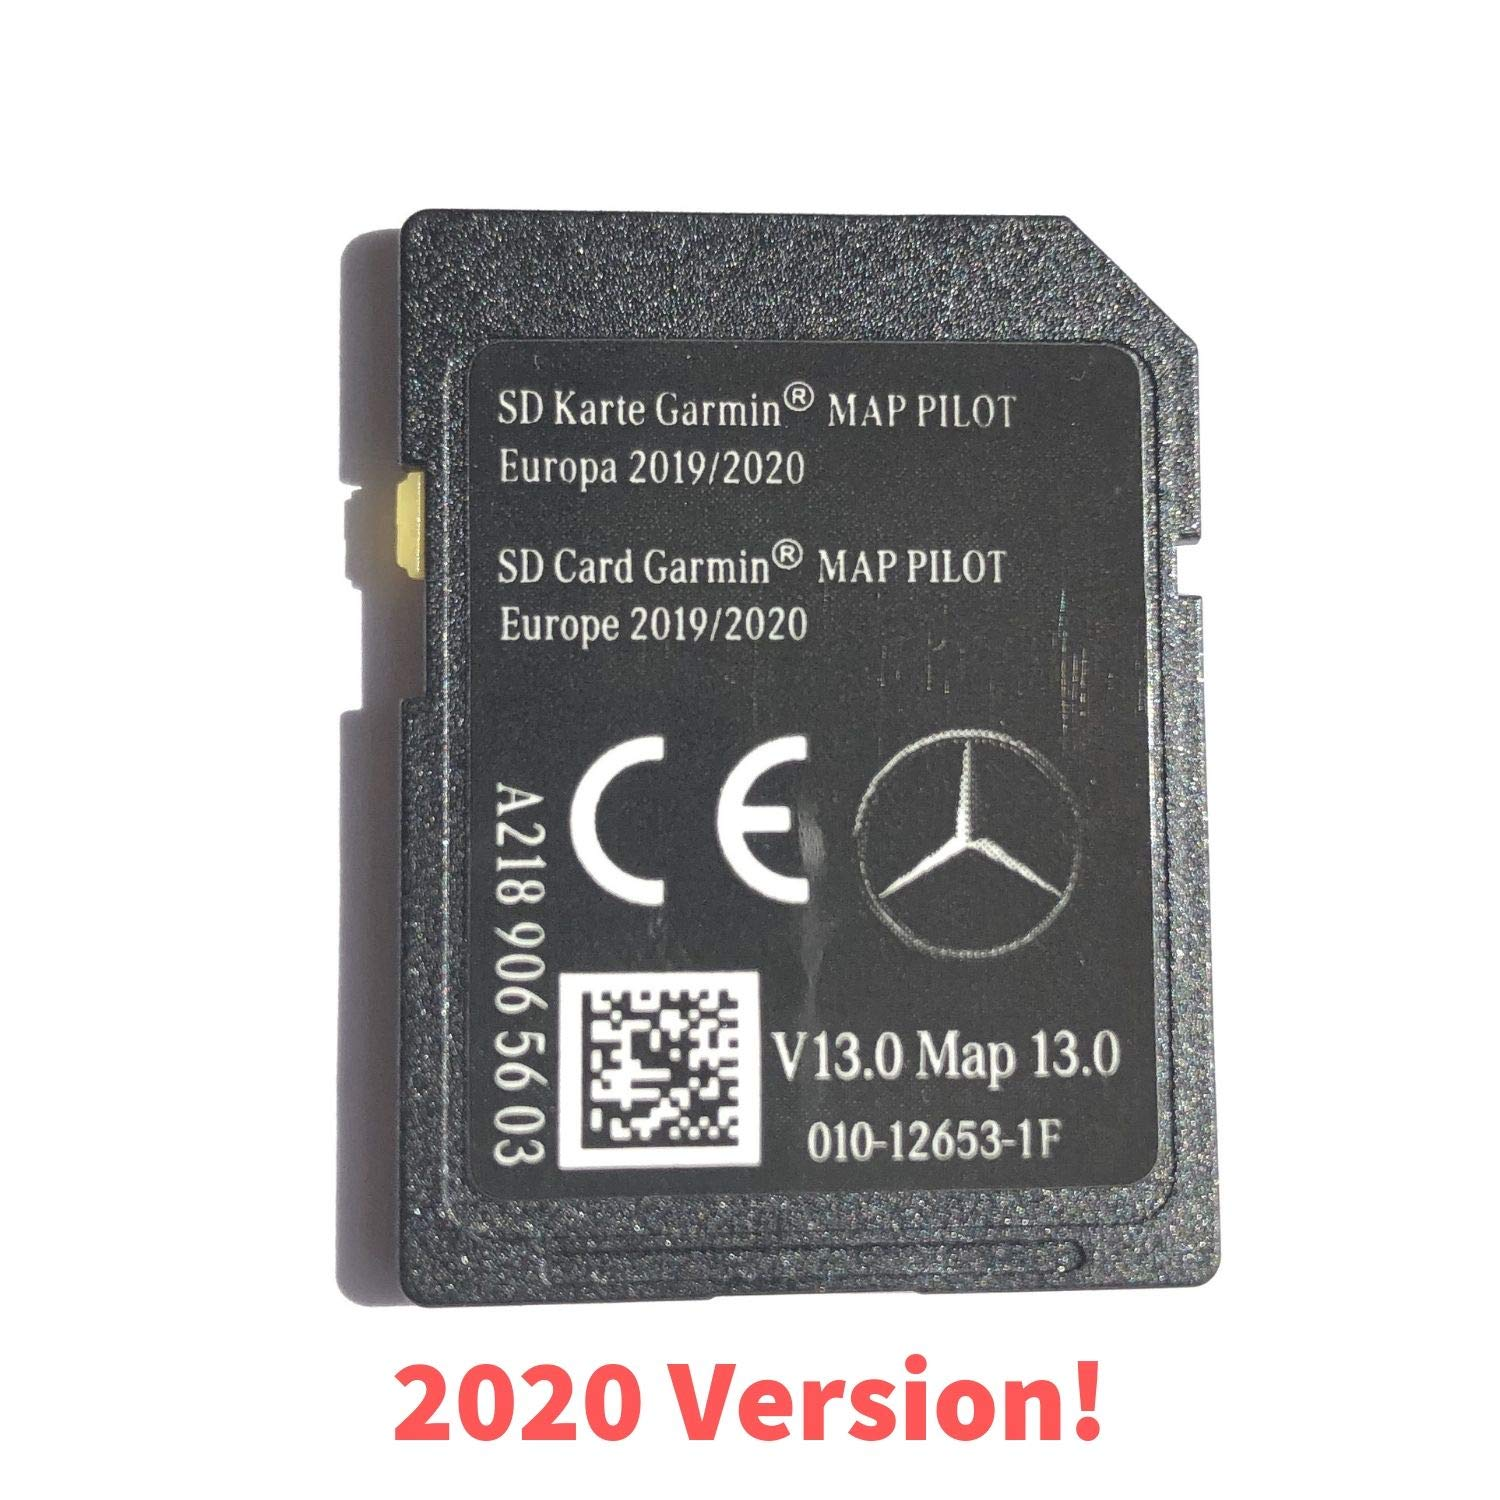 Mercedes-benz SD Card Garmin Map Pilot v12 2019 Europa a2189065503 nuevo